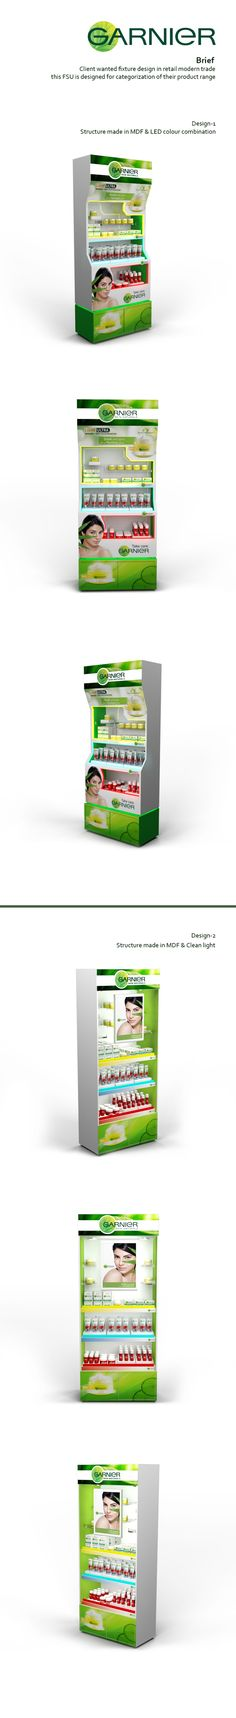 Personal Care-Garnier on Behance